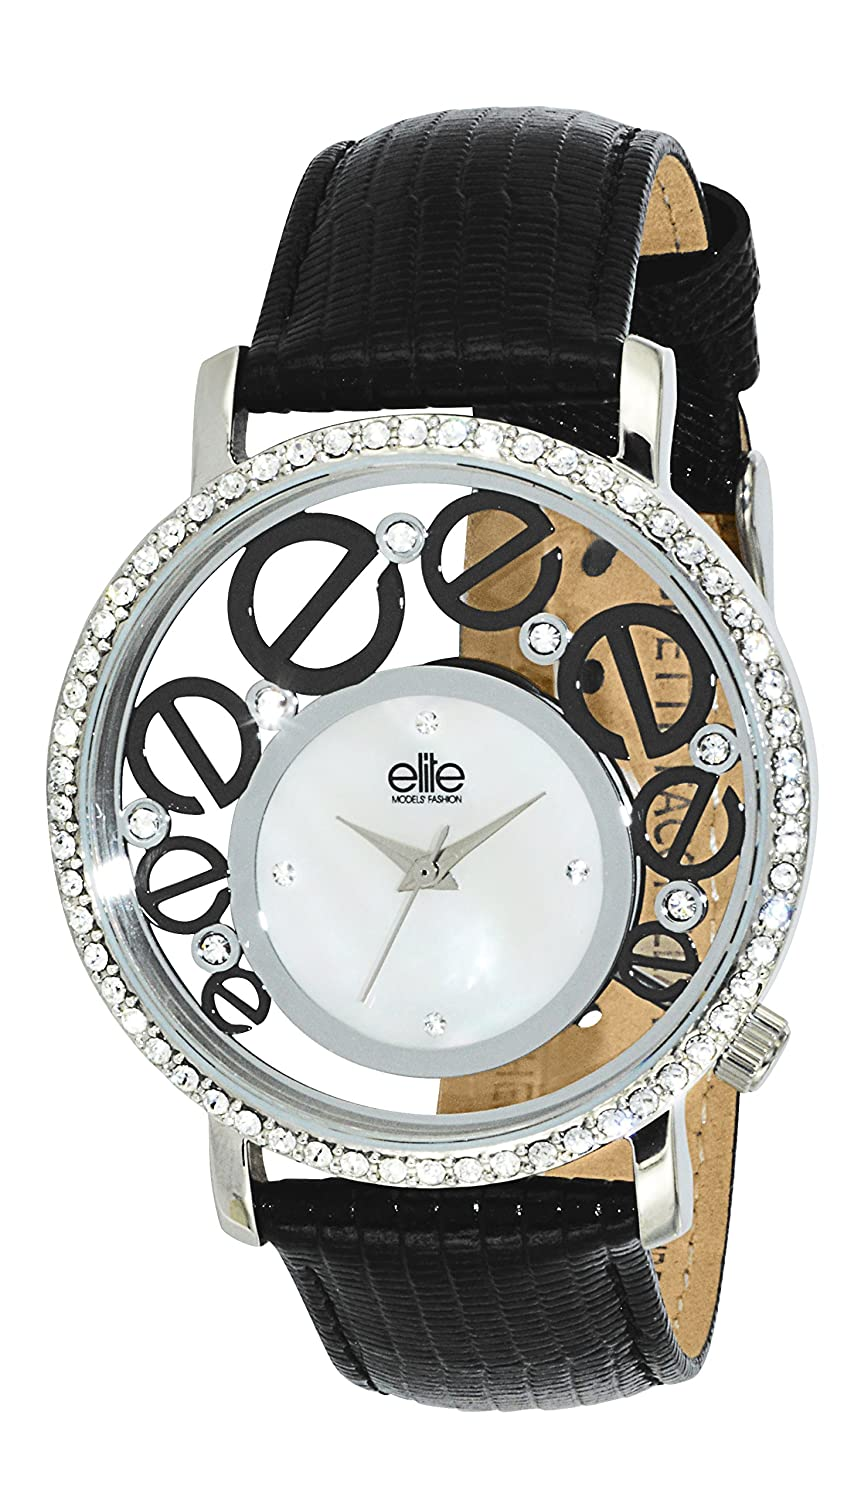 Elite Models' Fashion Damen-Armbanduhr Analog Quarz Schwarz E53952-203